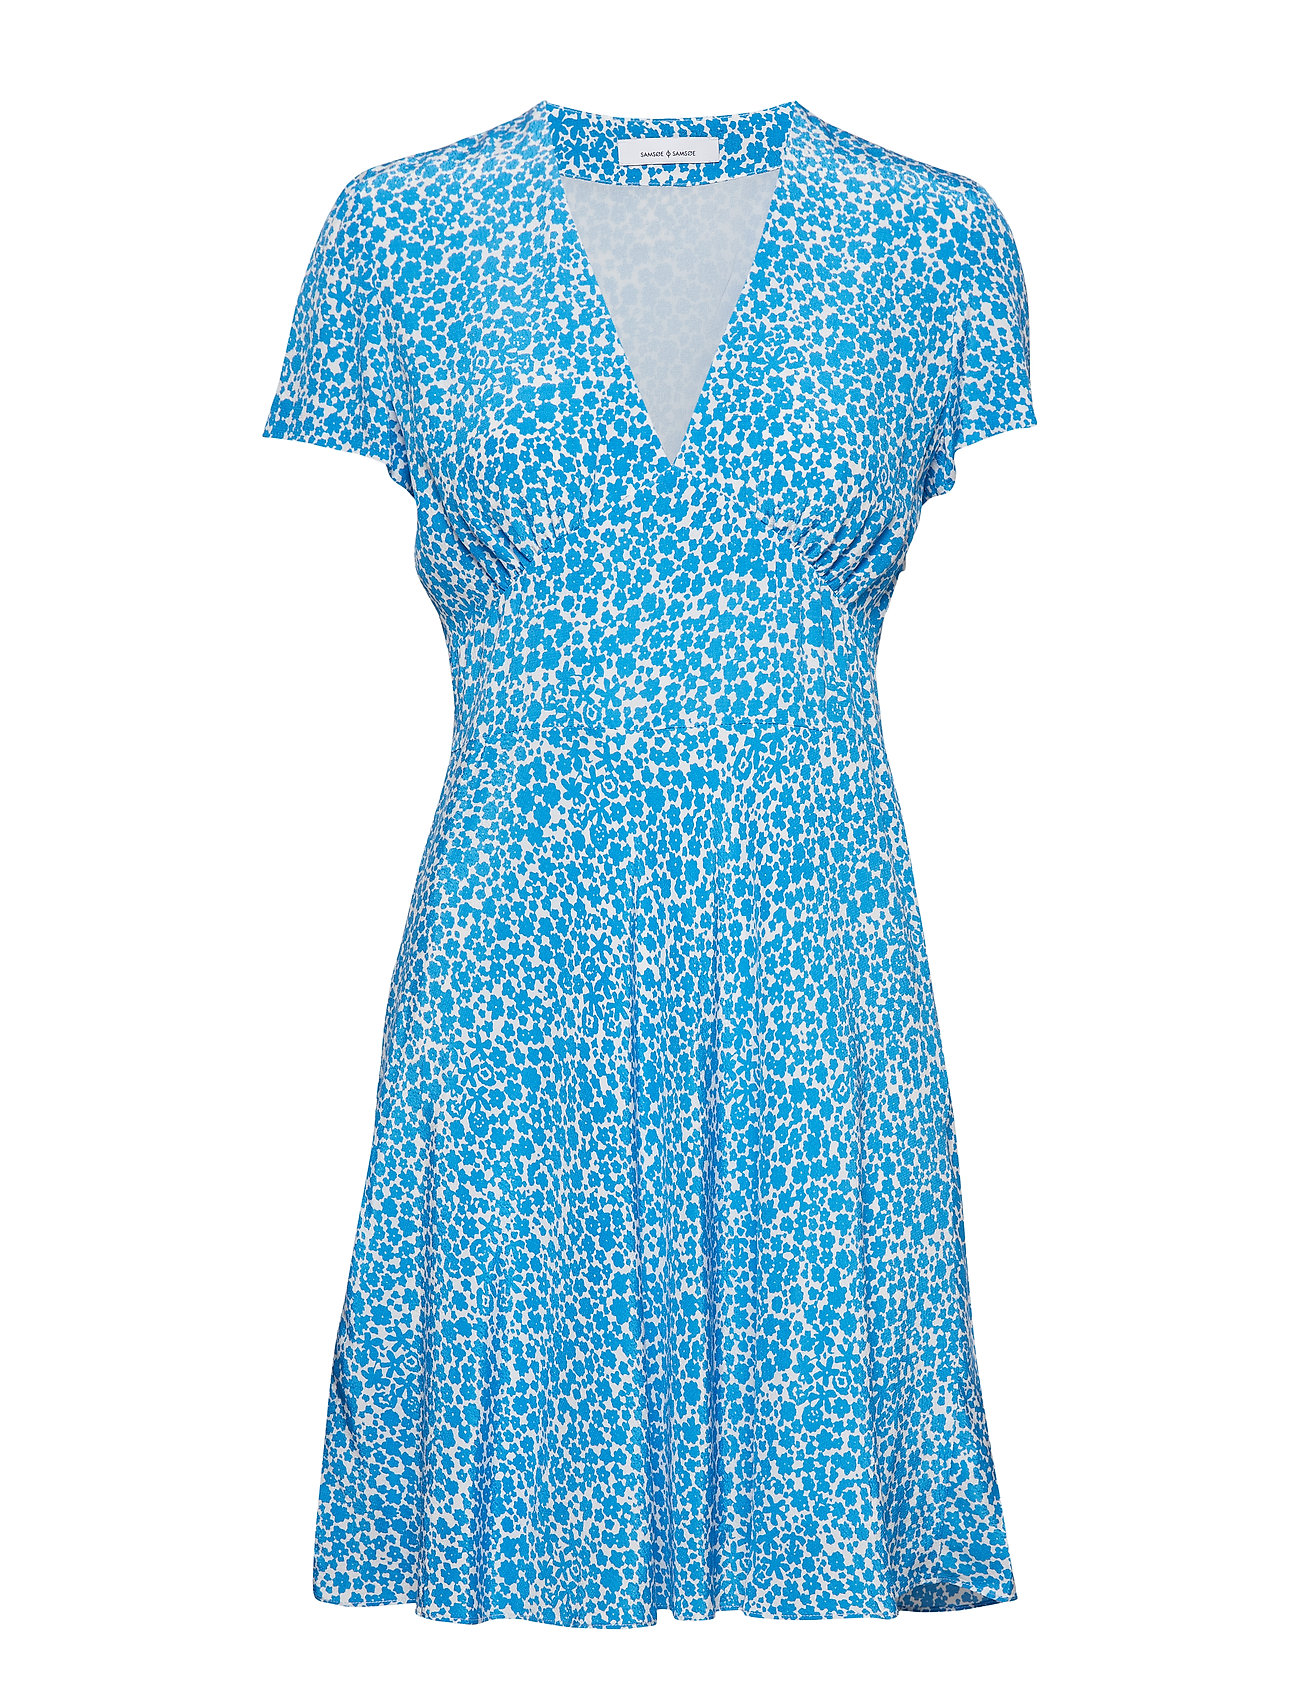 Cindy ButtercupSamsøeamp; 10056blue Aop S Dress 76fgyvYb